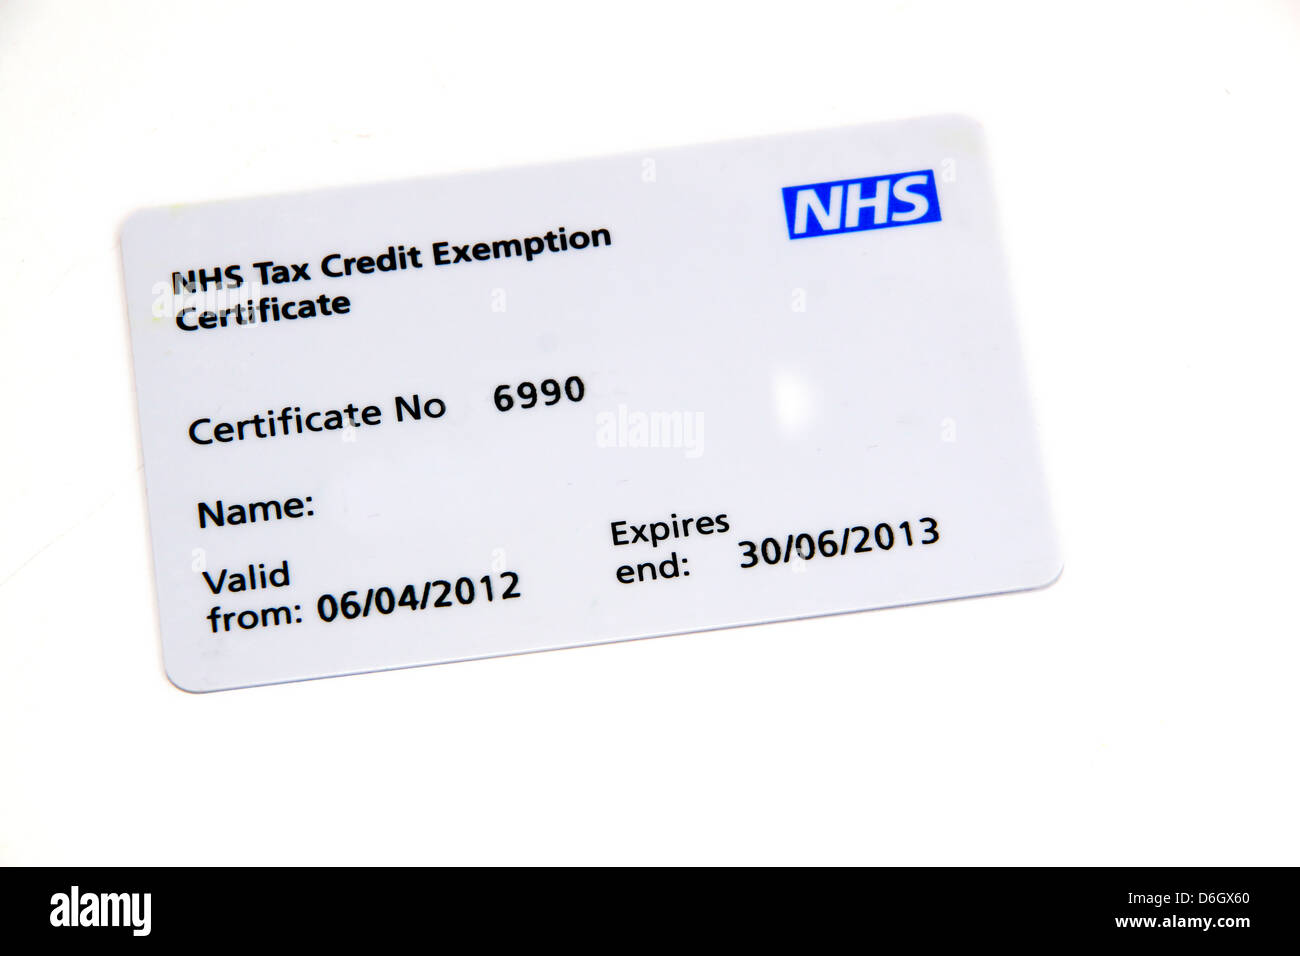 Exemption certificate stock photos exemption certificate stock uk nhs tax credit exemption certificate card stock image altavistaventures Image collections